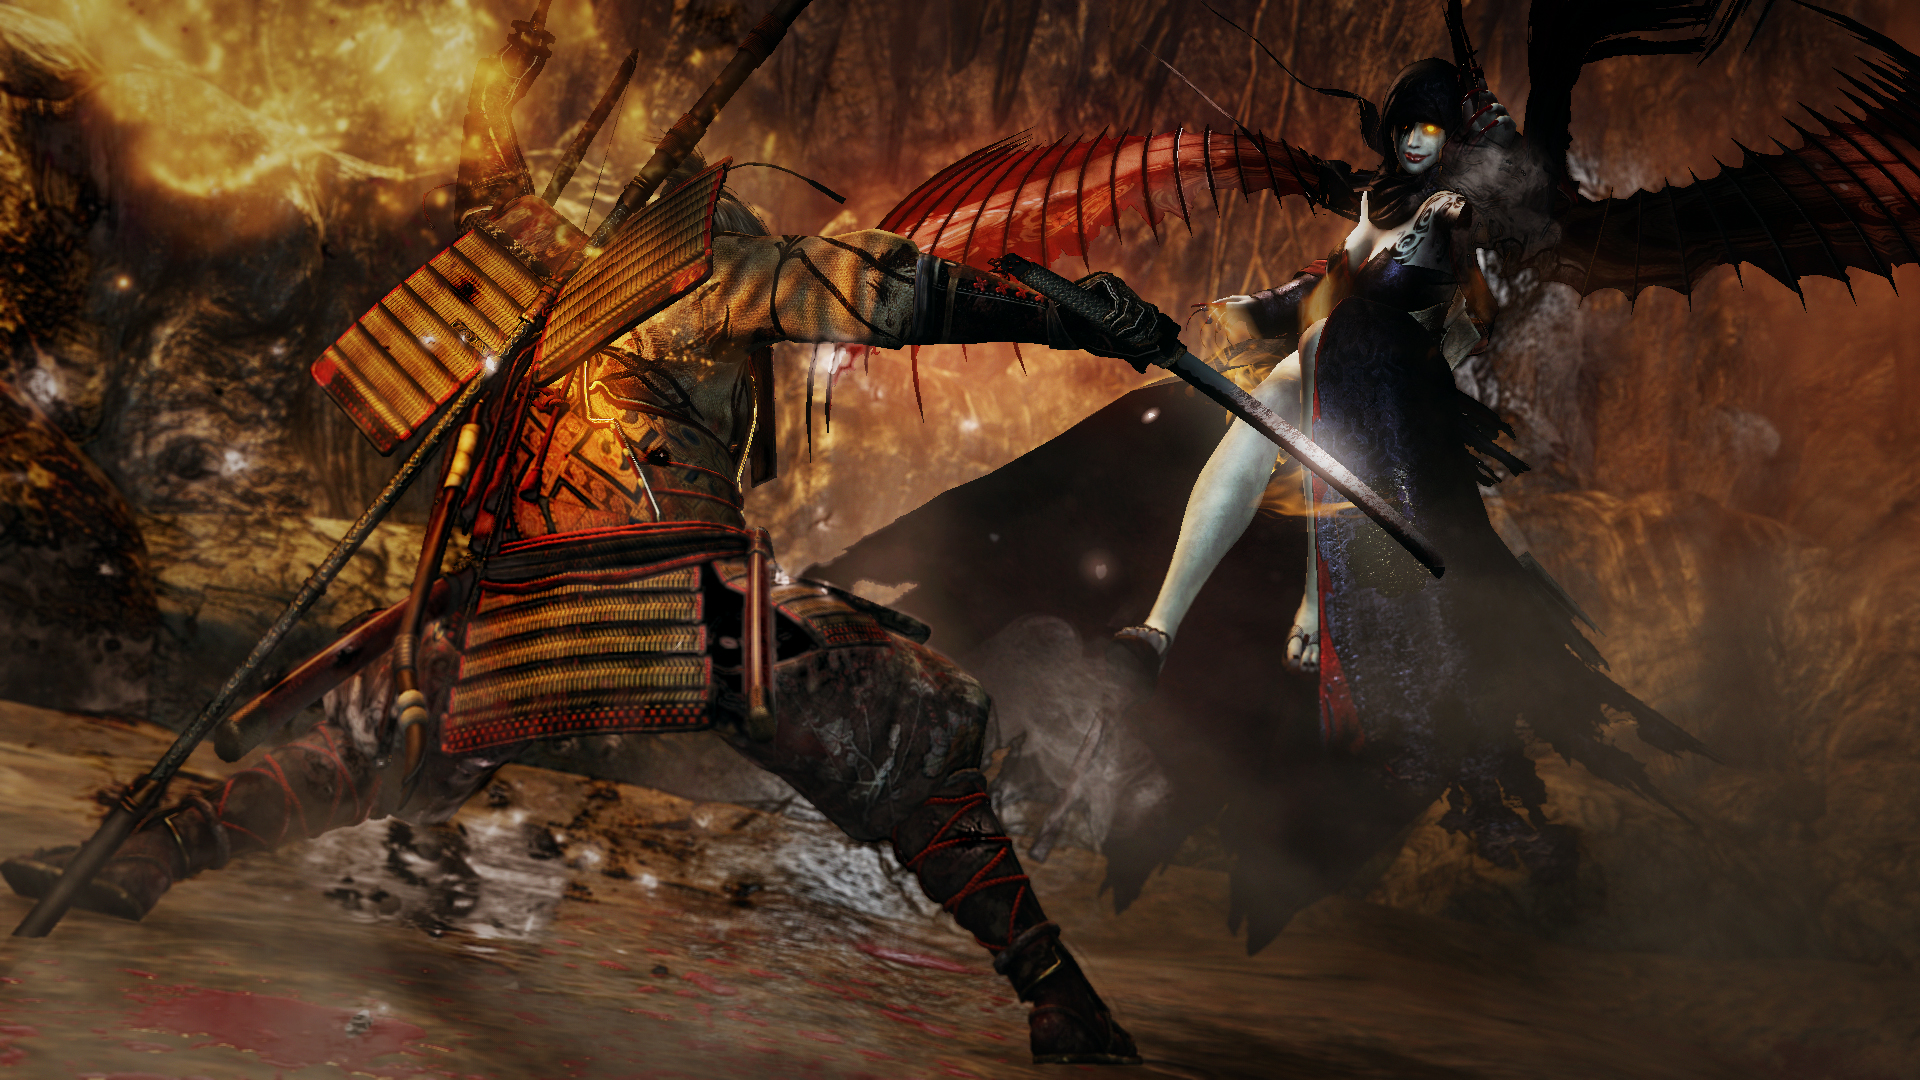 Hyped4 Nioh Poster Ps4 Region 3 English In Spite Of All This We Warn You That Battles Are Usually Very Technical And Even Slow Throwing Into The Attack Without Thinking Rarely Does Not End Up